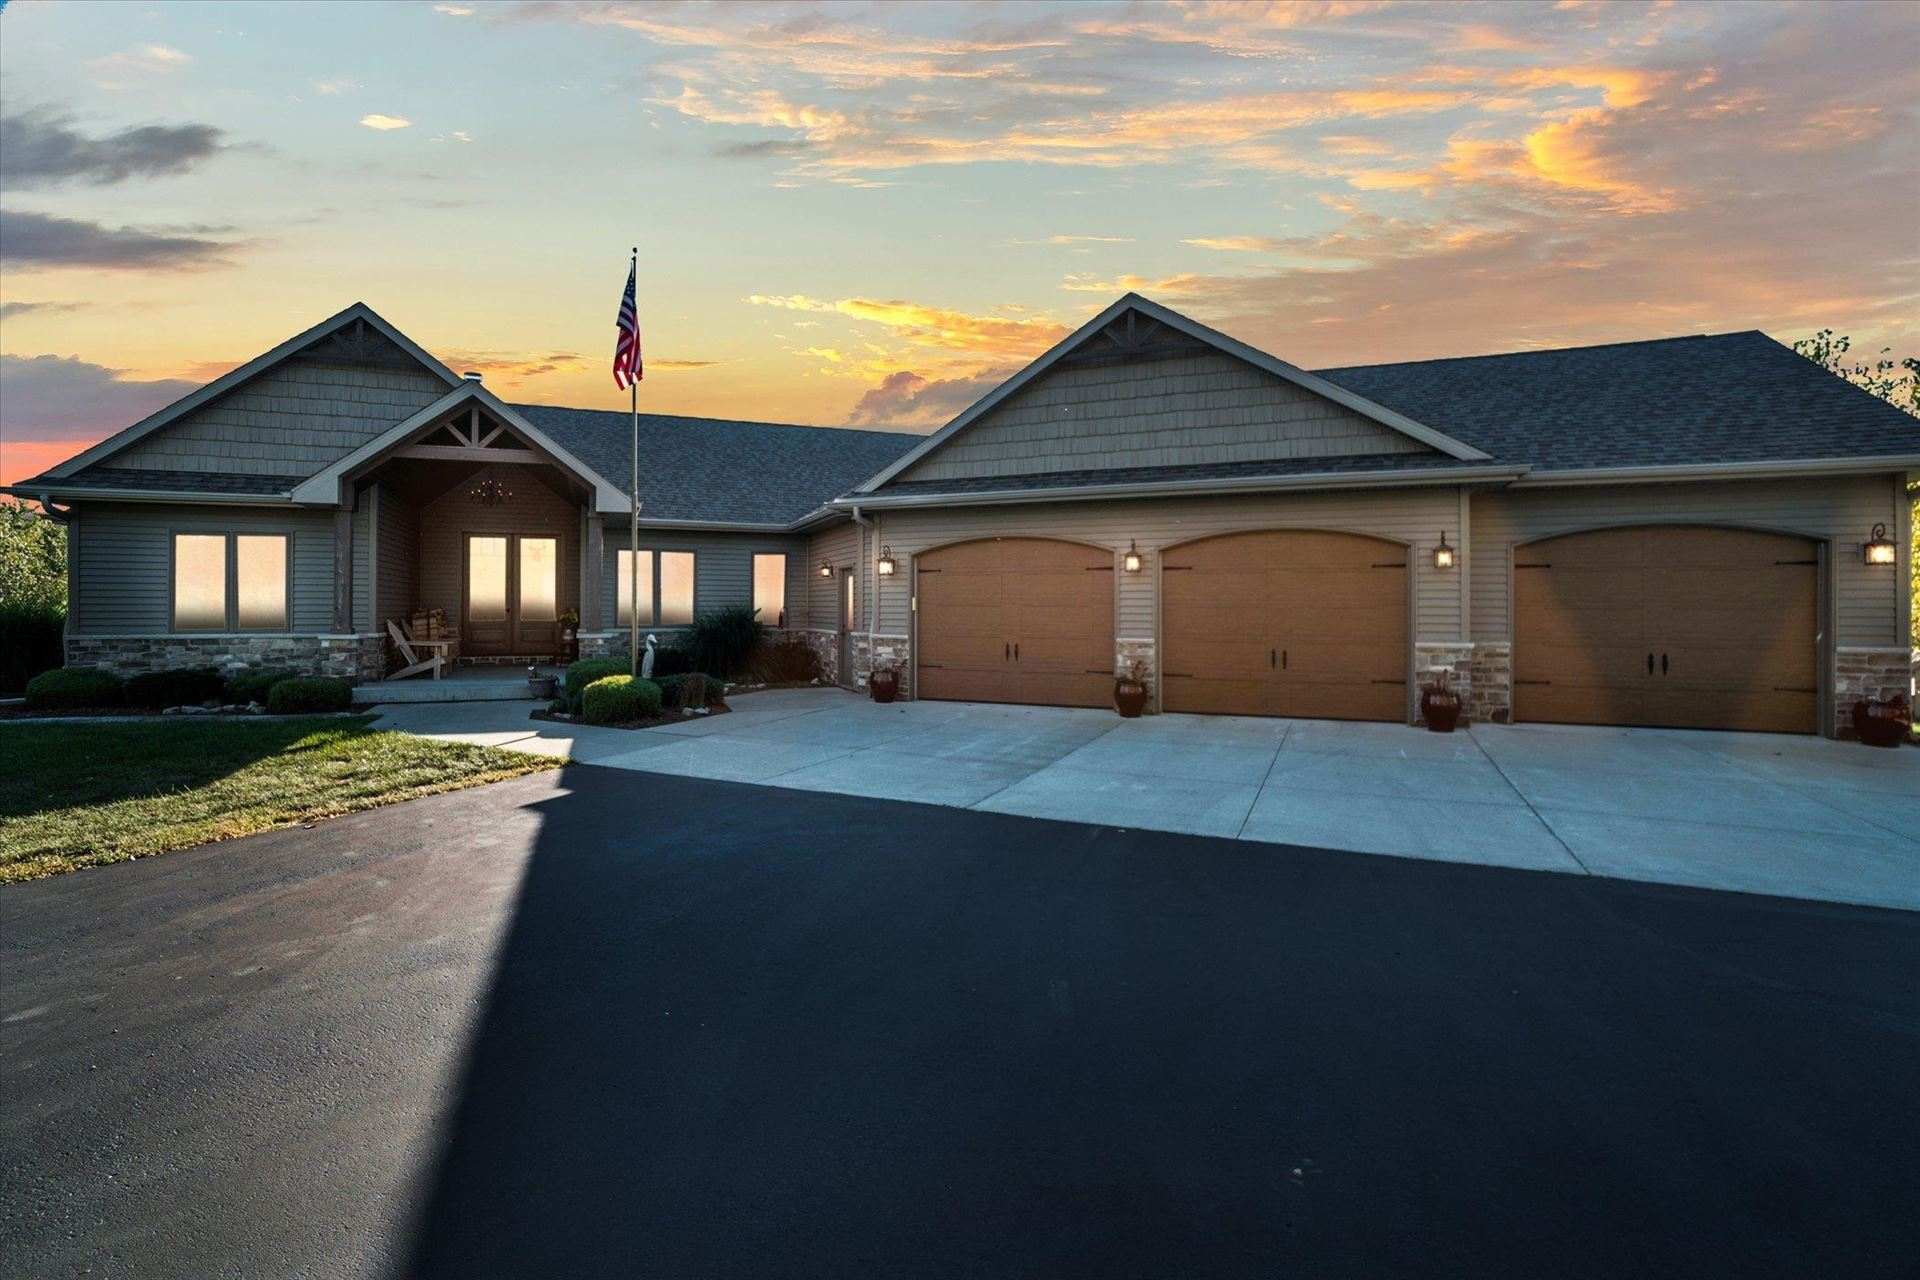 2403 N Tay Ct, Janesville, WI 53548 - #: 1919991